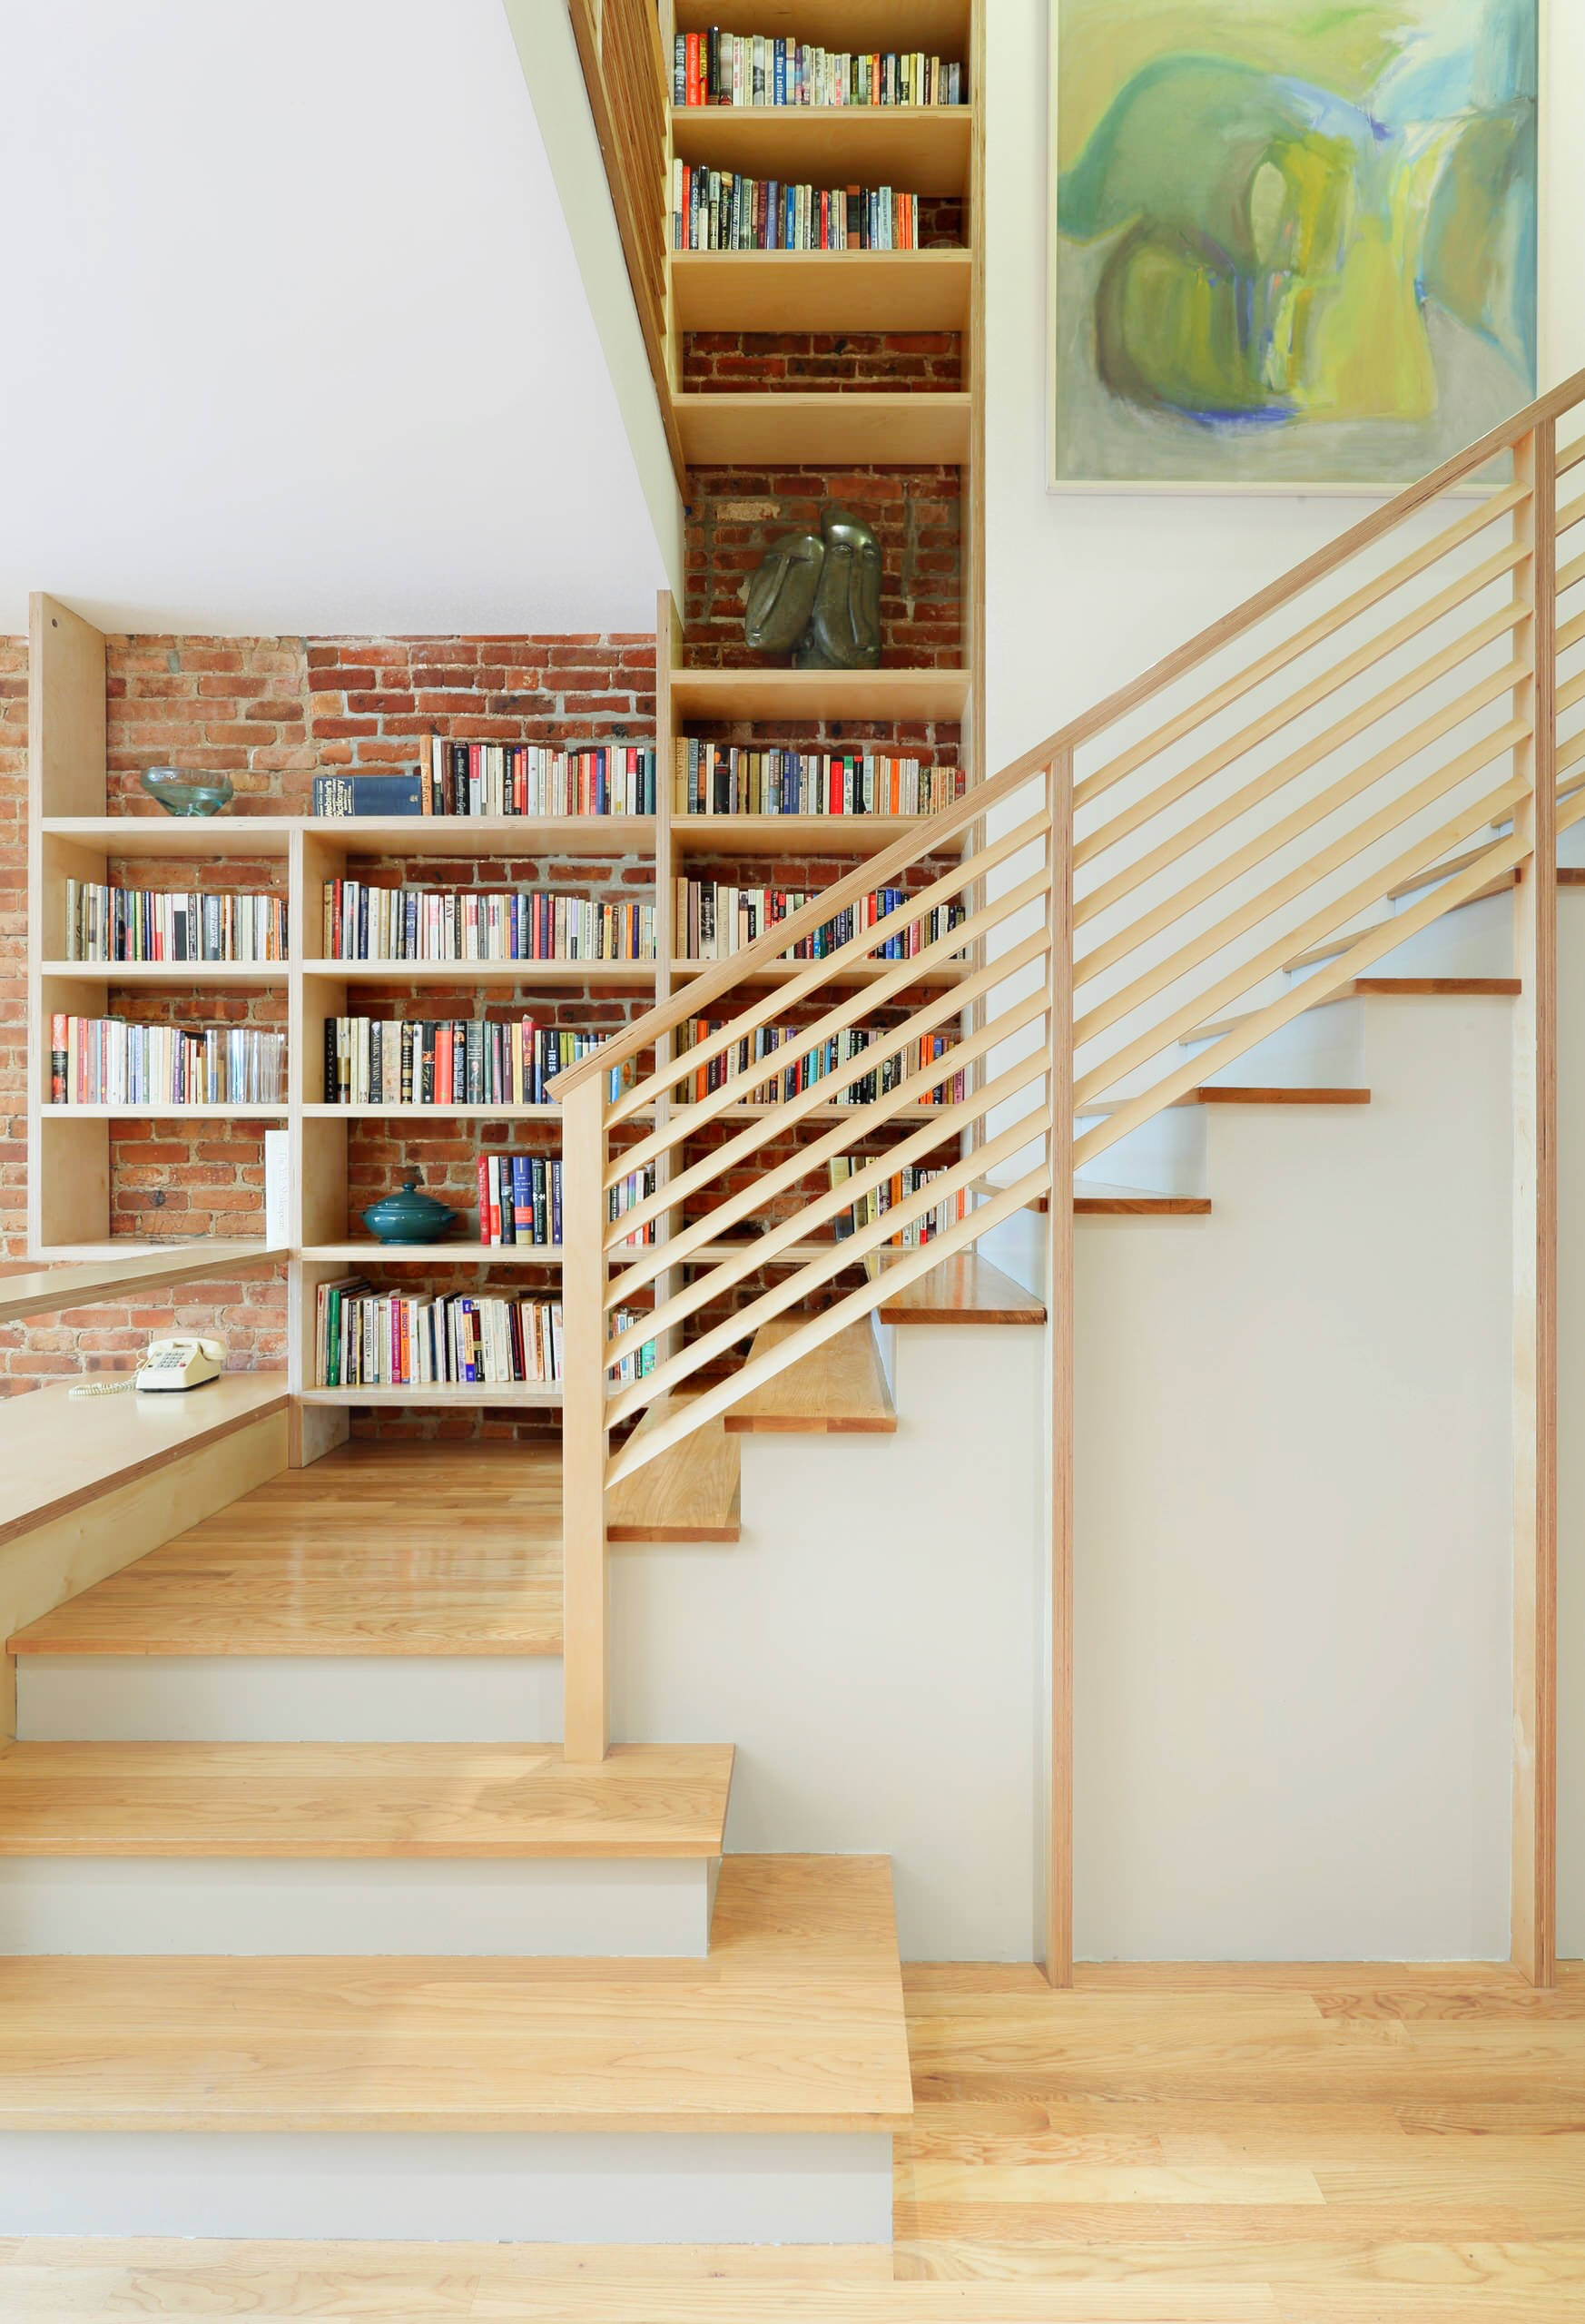 50 Creative Ways To Incorporate Book Storage In Around Stairs   Wooden Stair Railings Indoor   Stain White   House   Wooden Balustrade   Custom   Modern